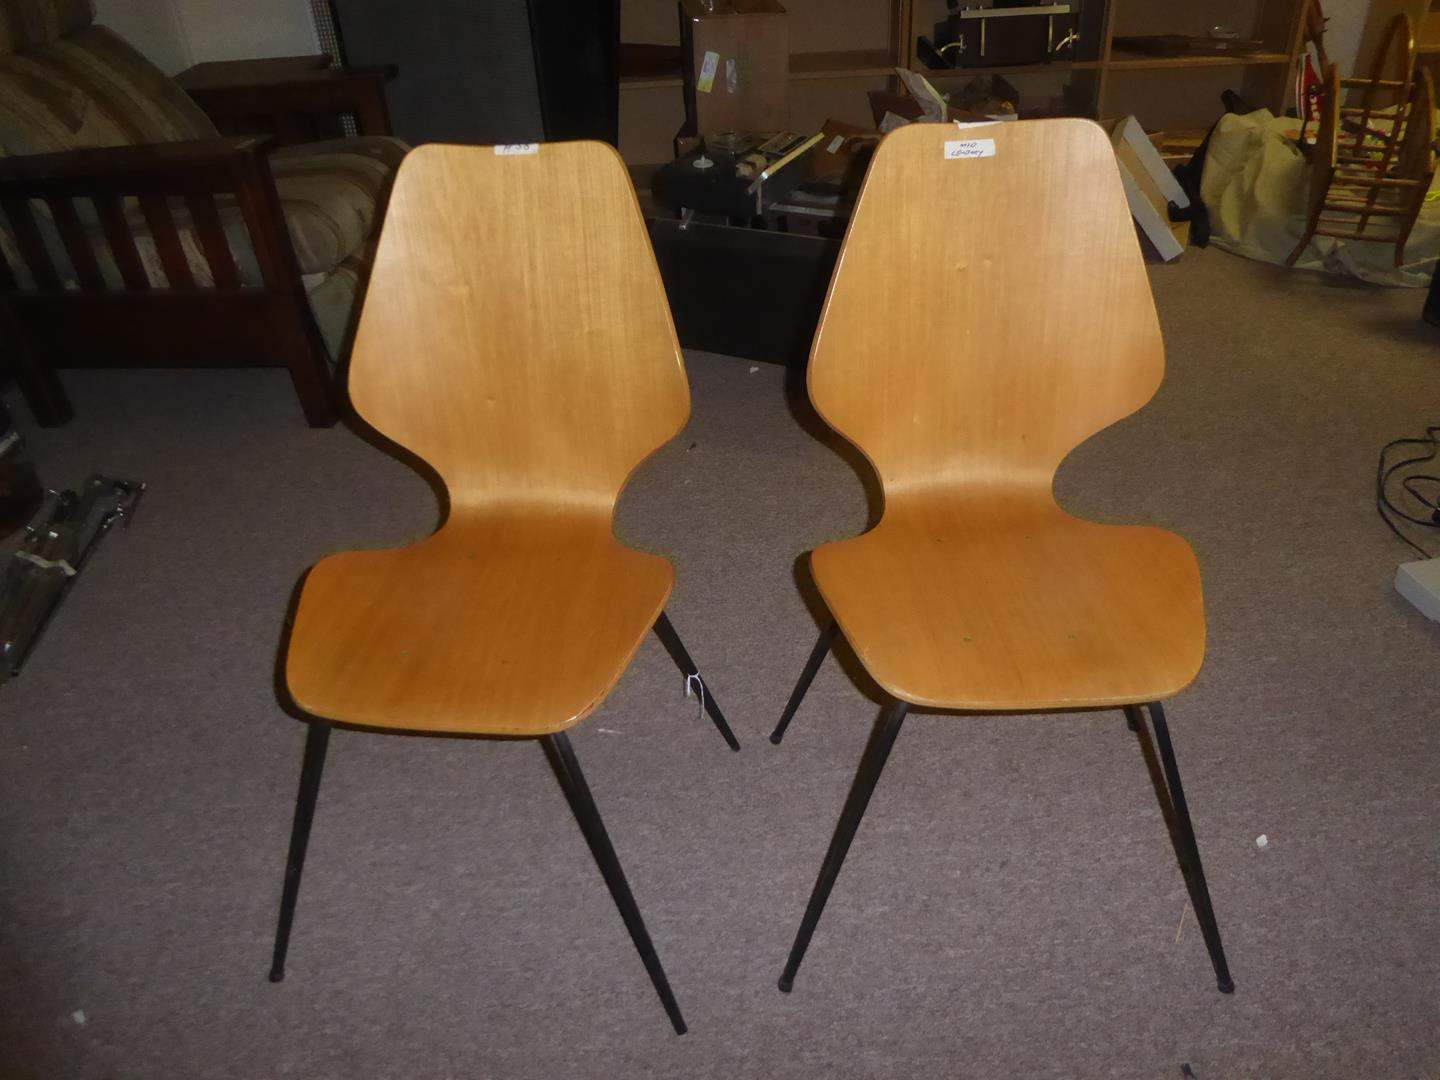 Lot # 58 - Pair Mid-Century Dining Chairs - Made in Denmark (main image)